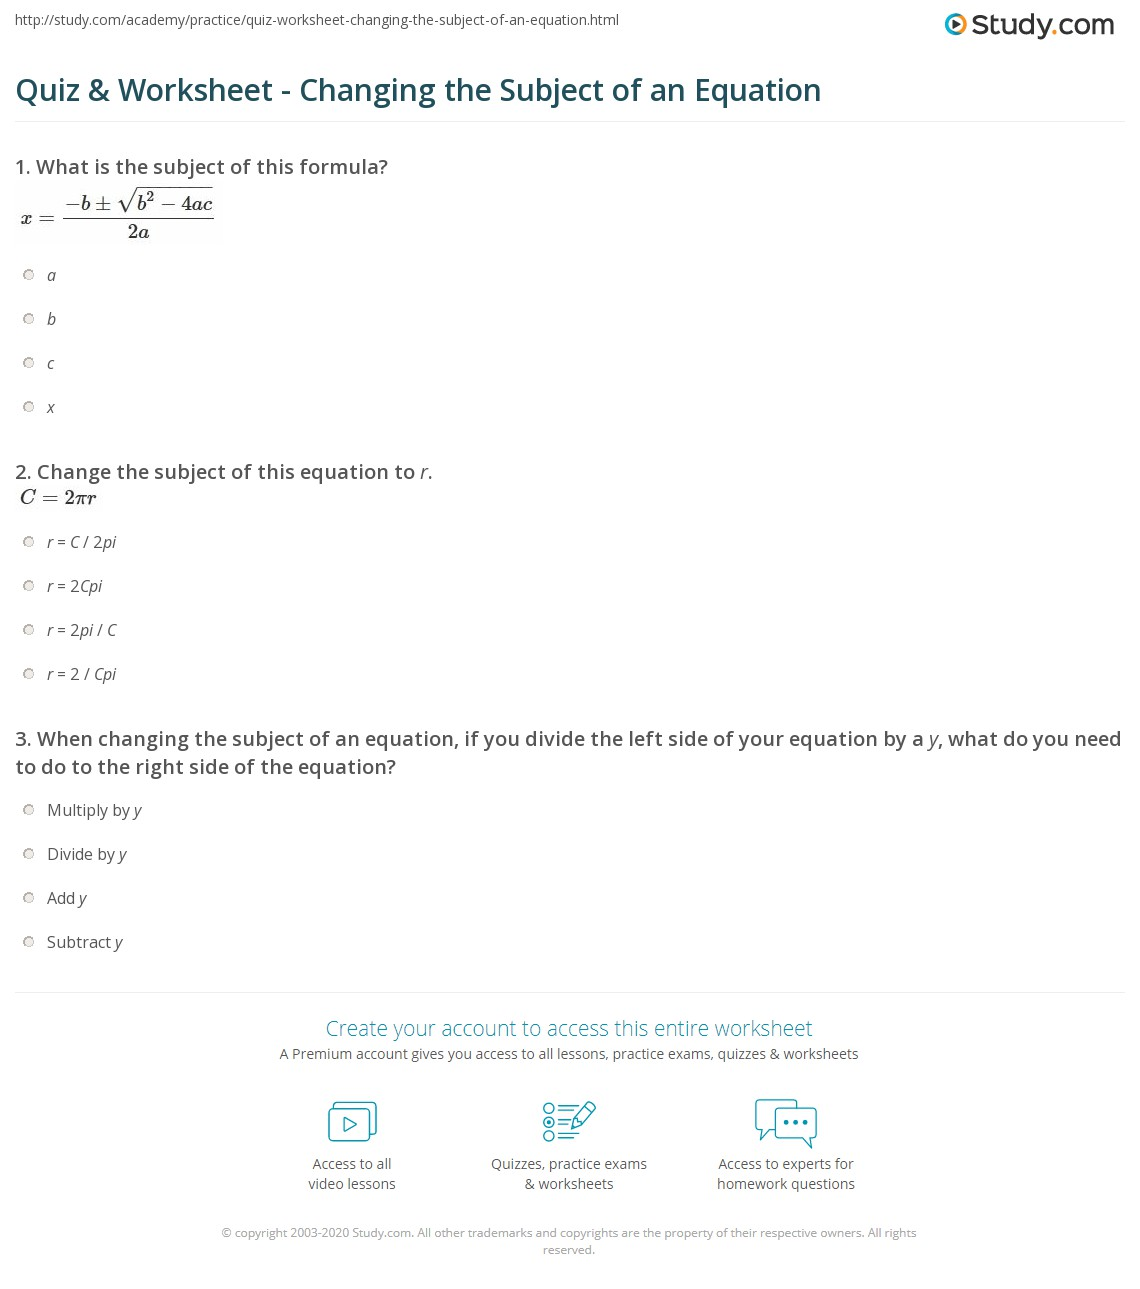 Quiz & Worksheet - Changing the Subject of an Equation | Study.com